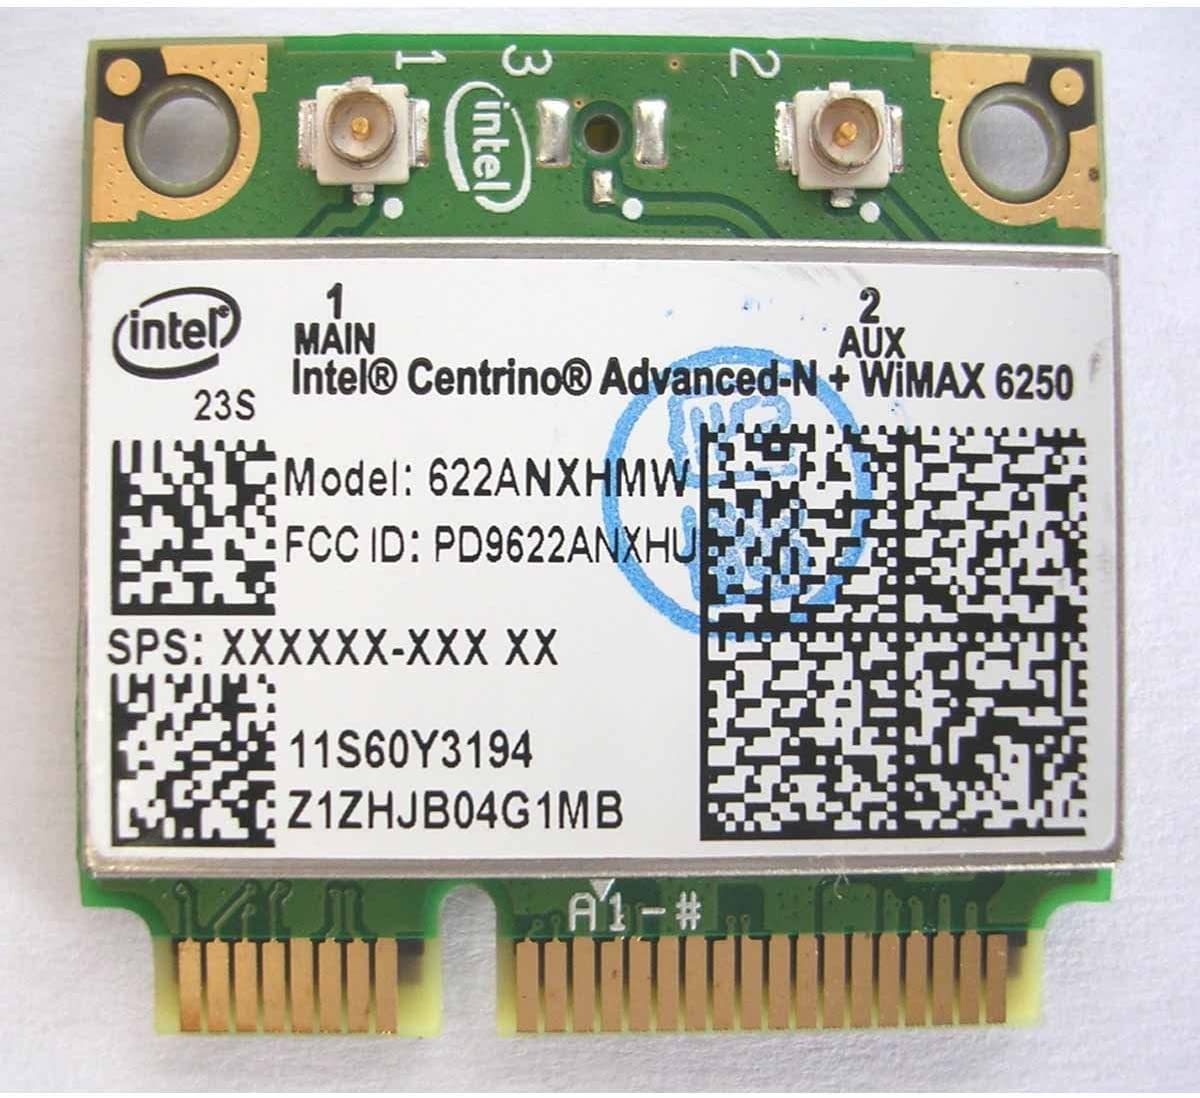 Intel Wifi/wimax Link 6250 6250anx Wireless N for IBM Thinkpad Lenovo ANX Wireless Half Pci-e Card